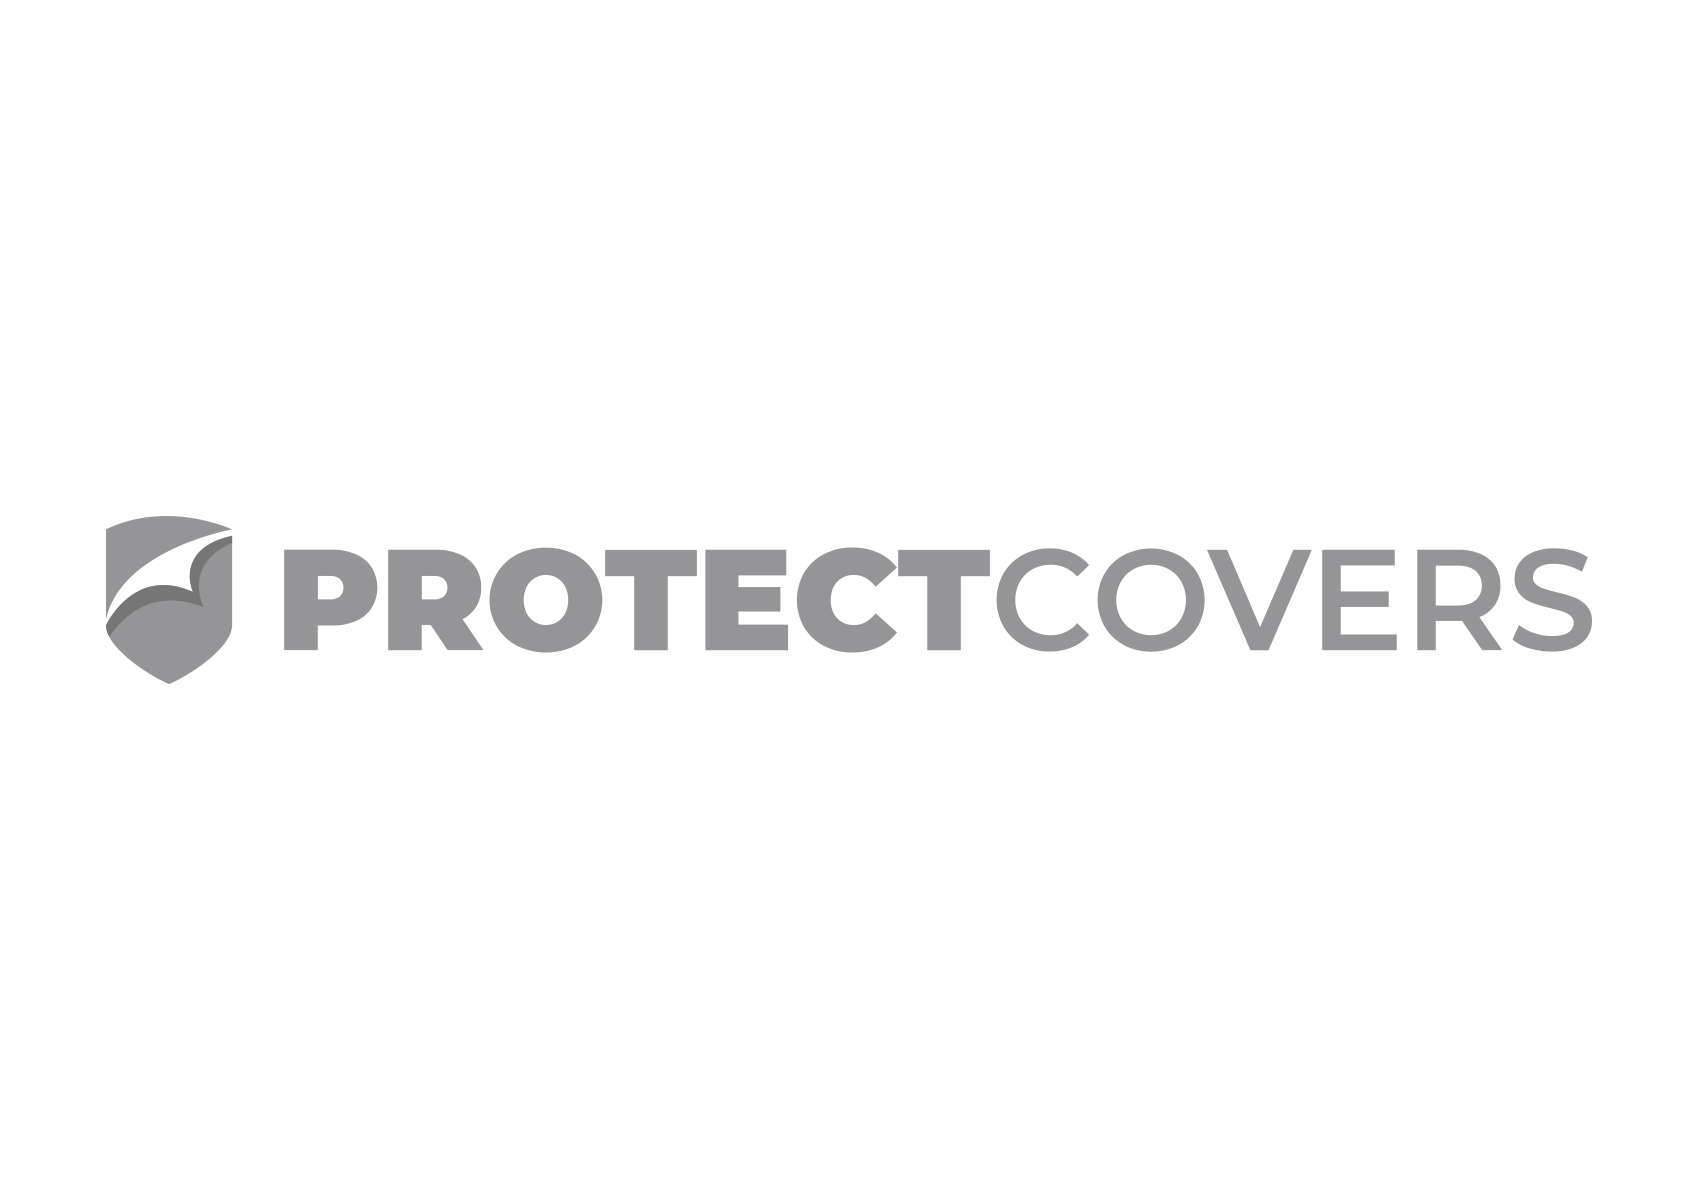 Protect Covers